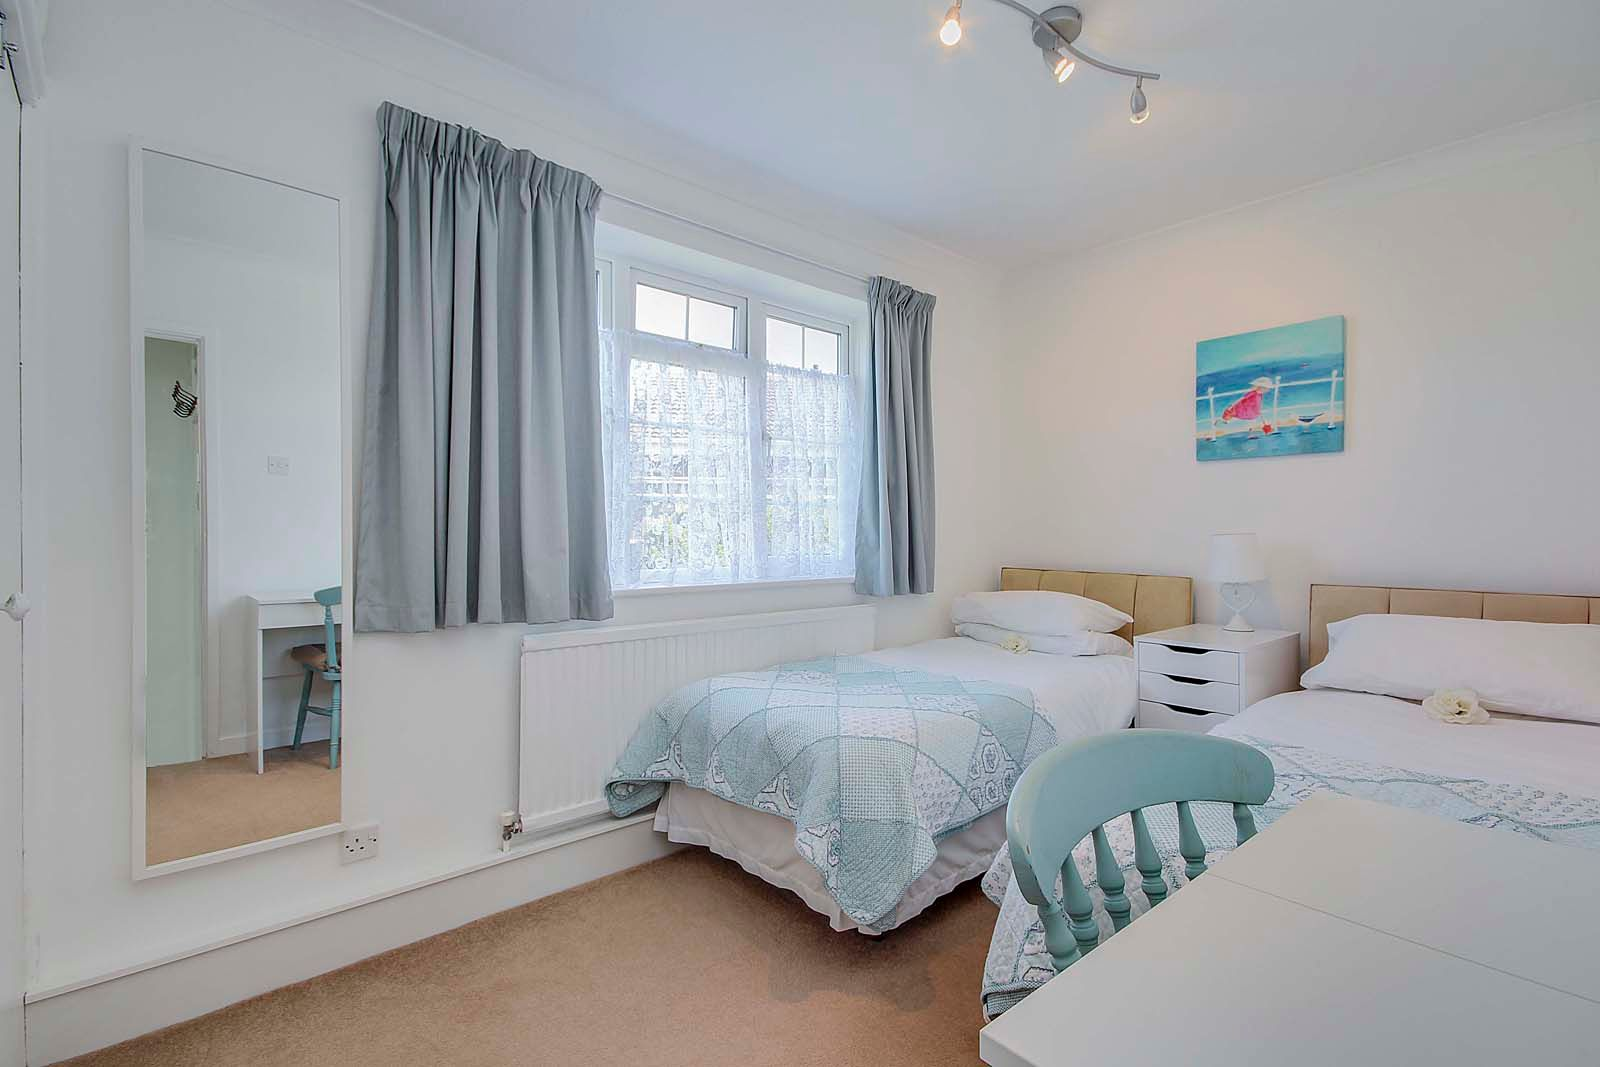 2 bed  for sale in Ferring Marine 8